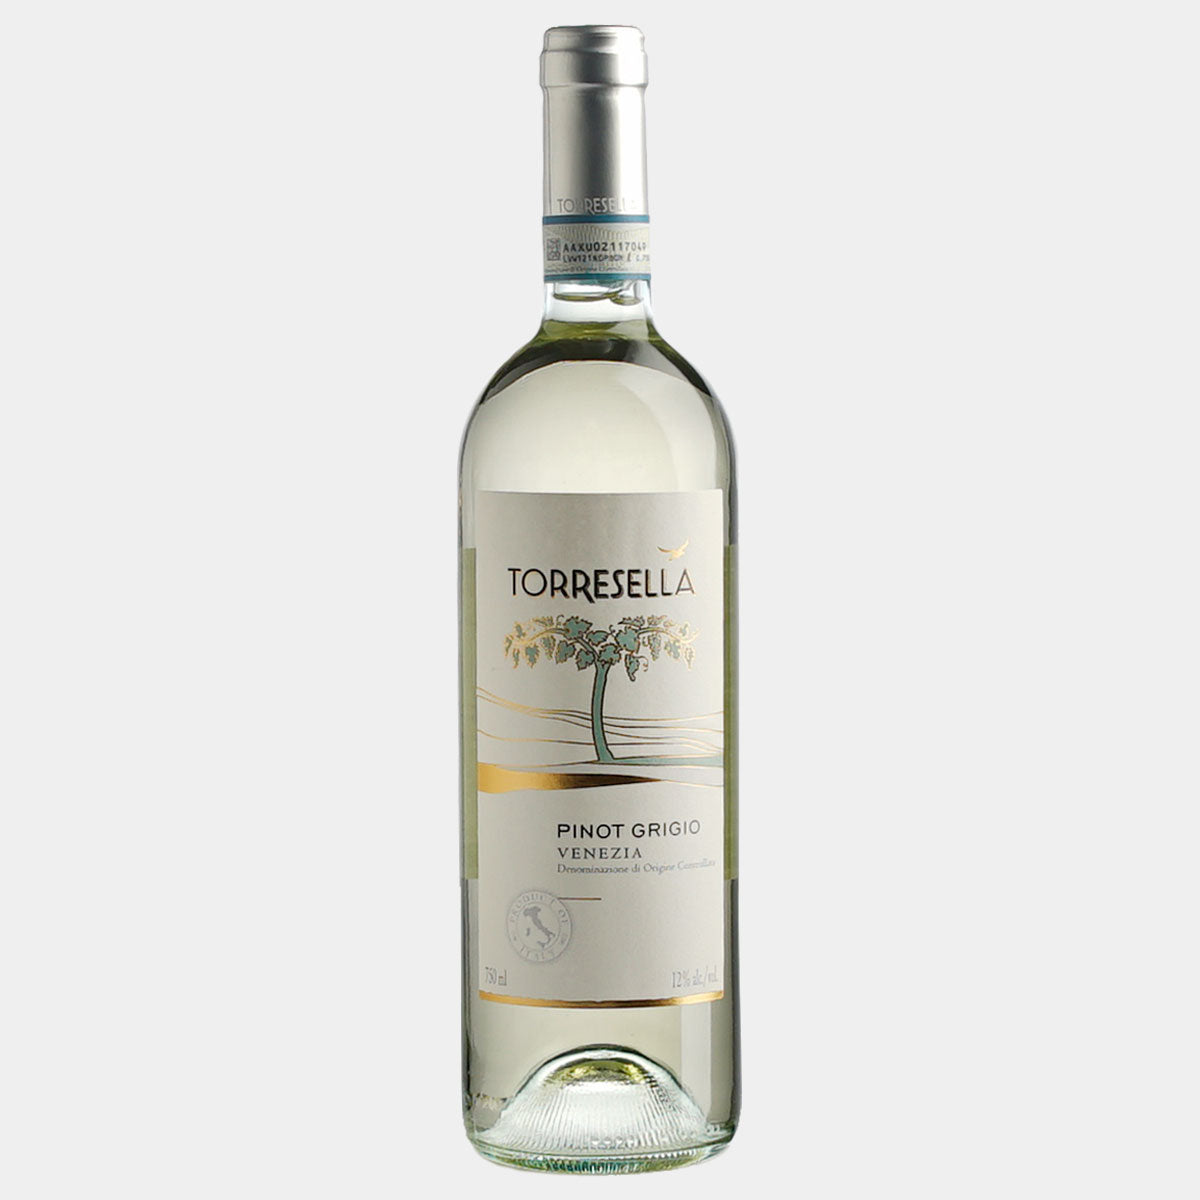 Torresella Pinot Grigio - Wines and Copas Barcelona